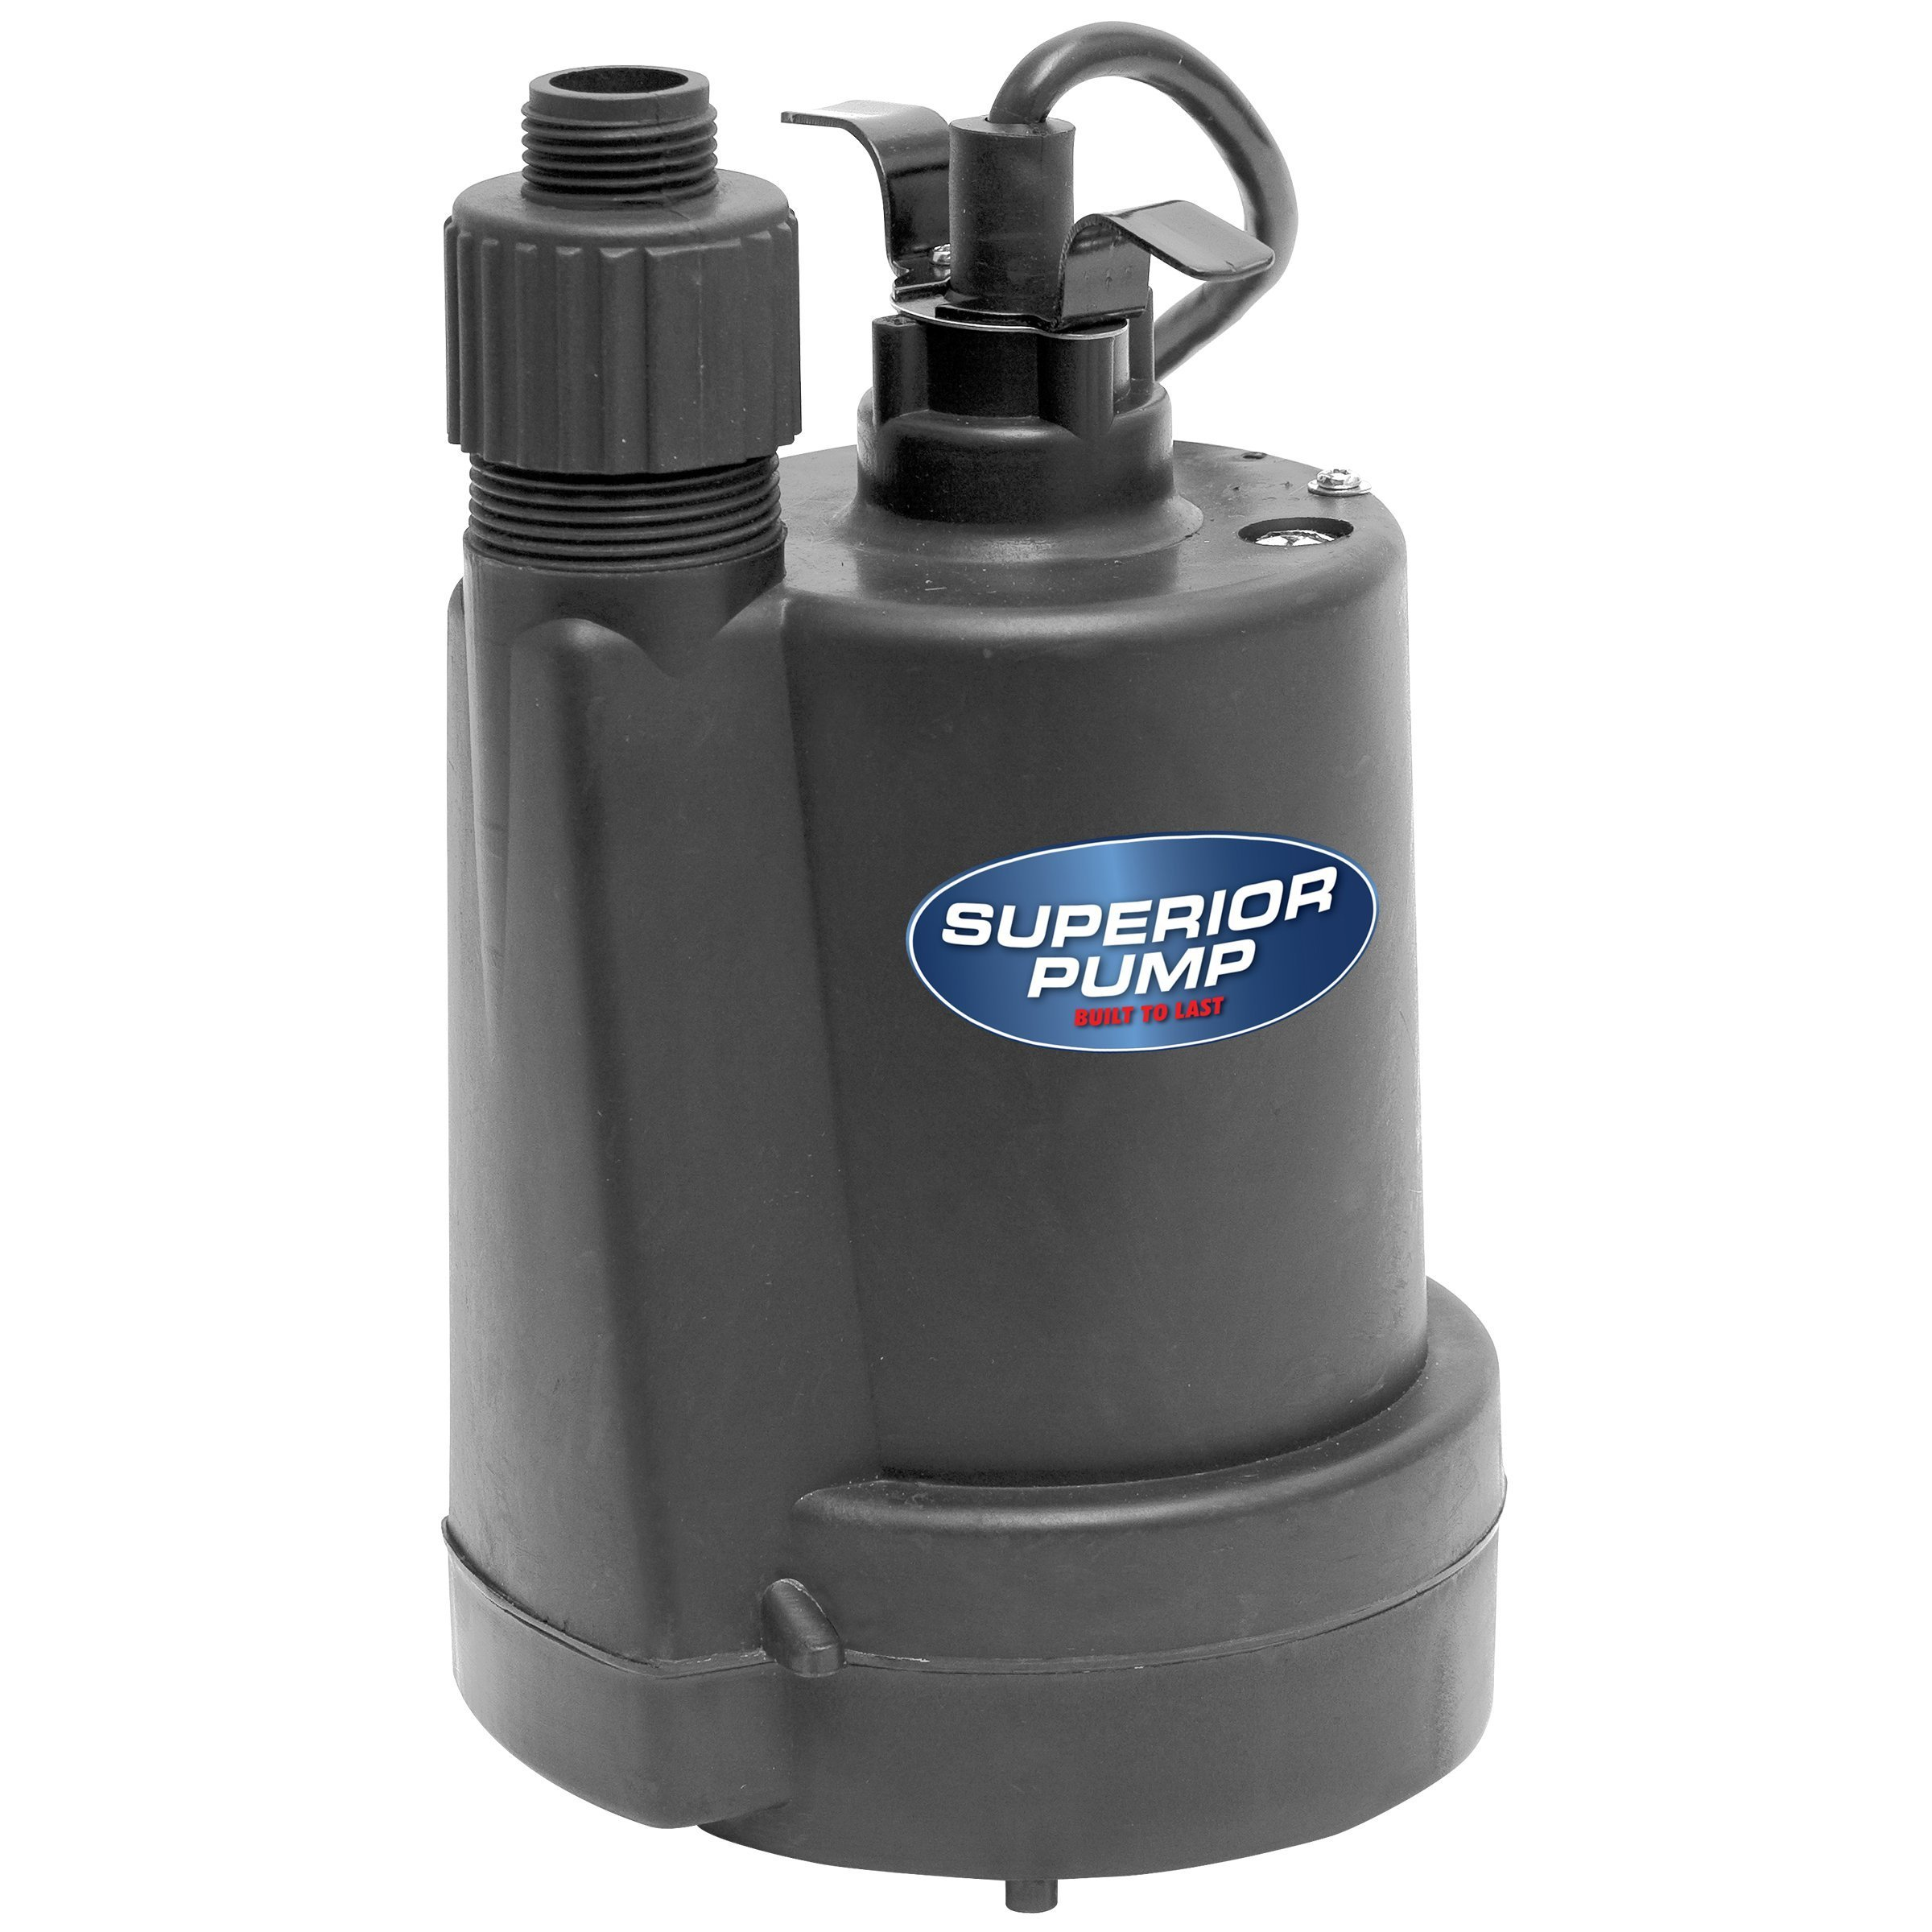 Superior Pump 91250 1/4 HP Thermoplastic Submersible Utility Pump with 10-Foot Cord (Renewed) by Superior Pump